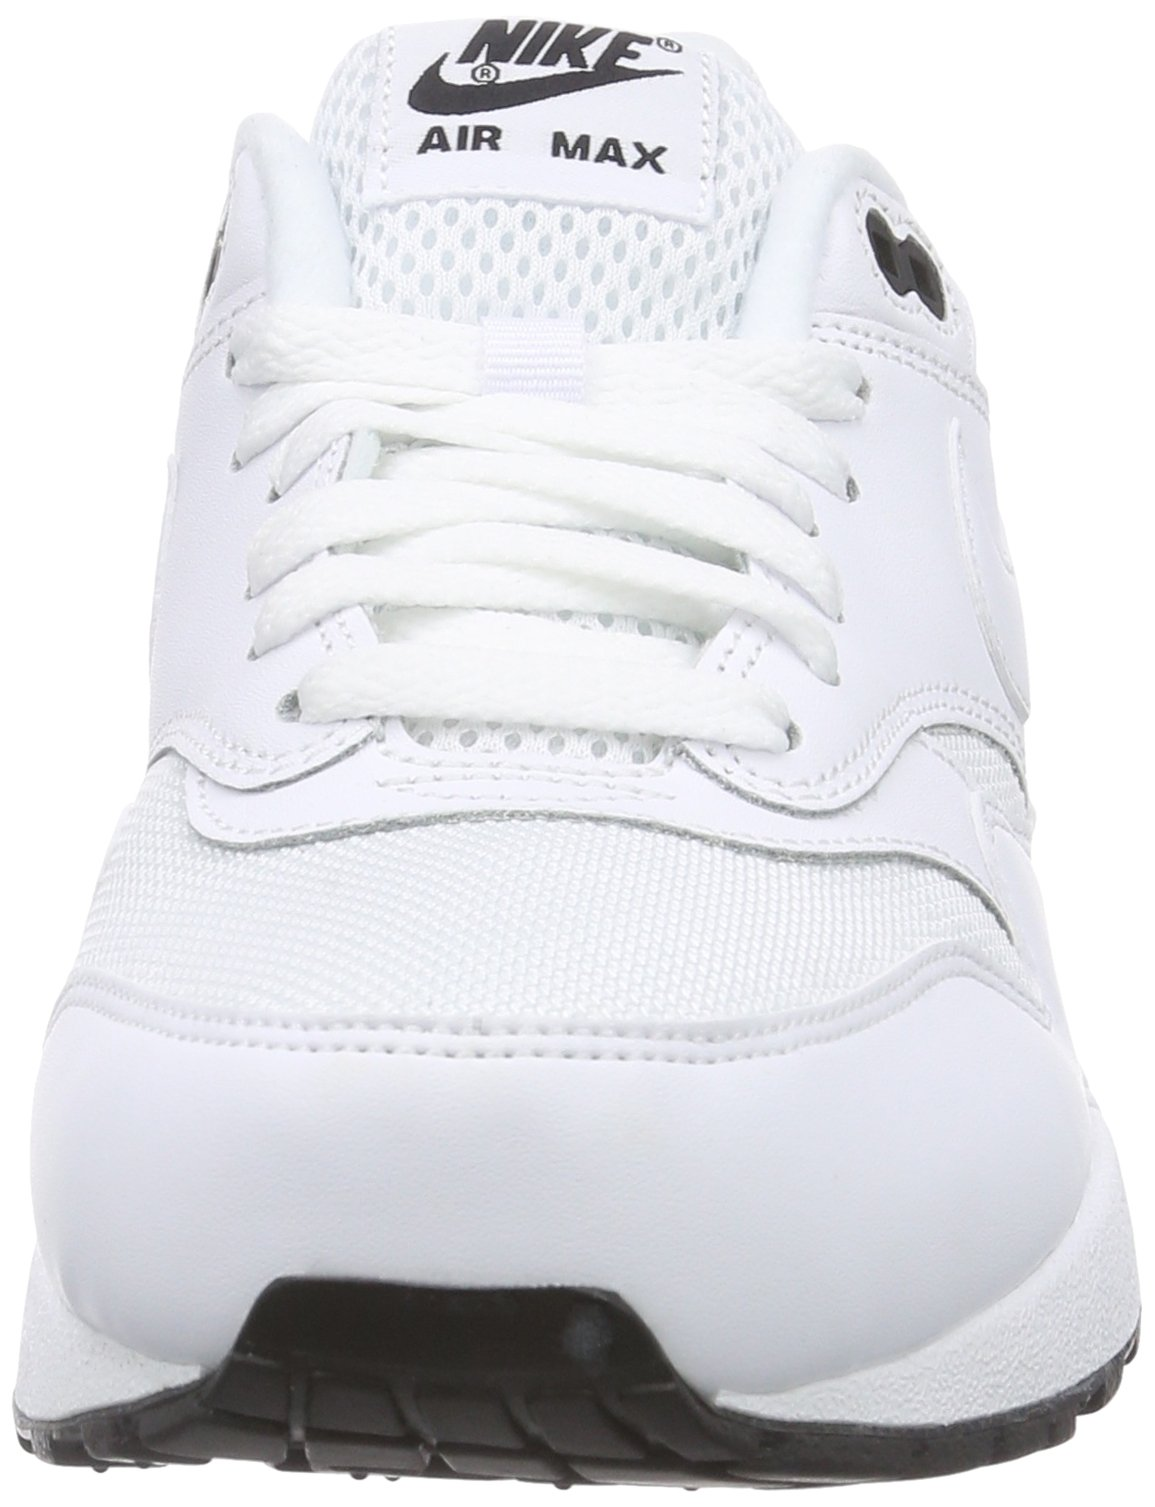 71sW Yp7pRL - NIKE Men Trainers AIR MAX 1 ESSENTIAL